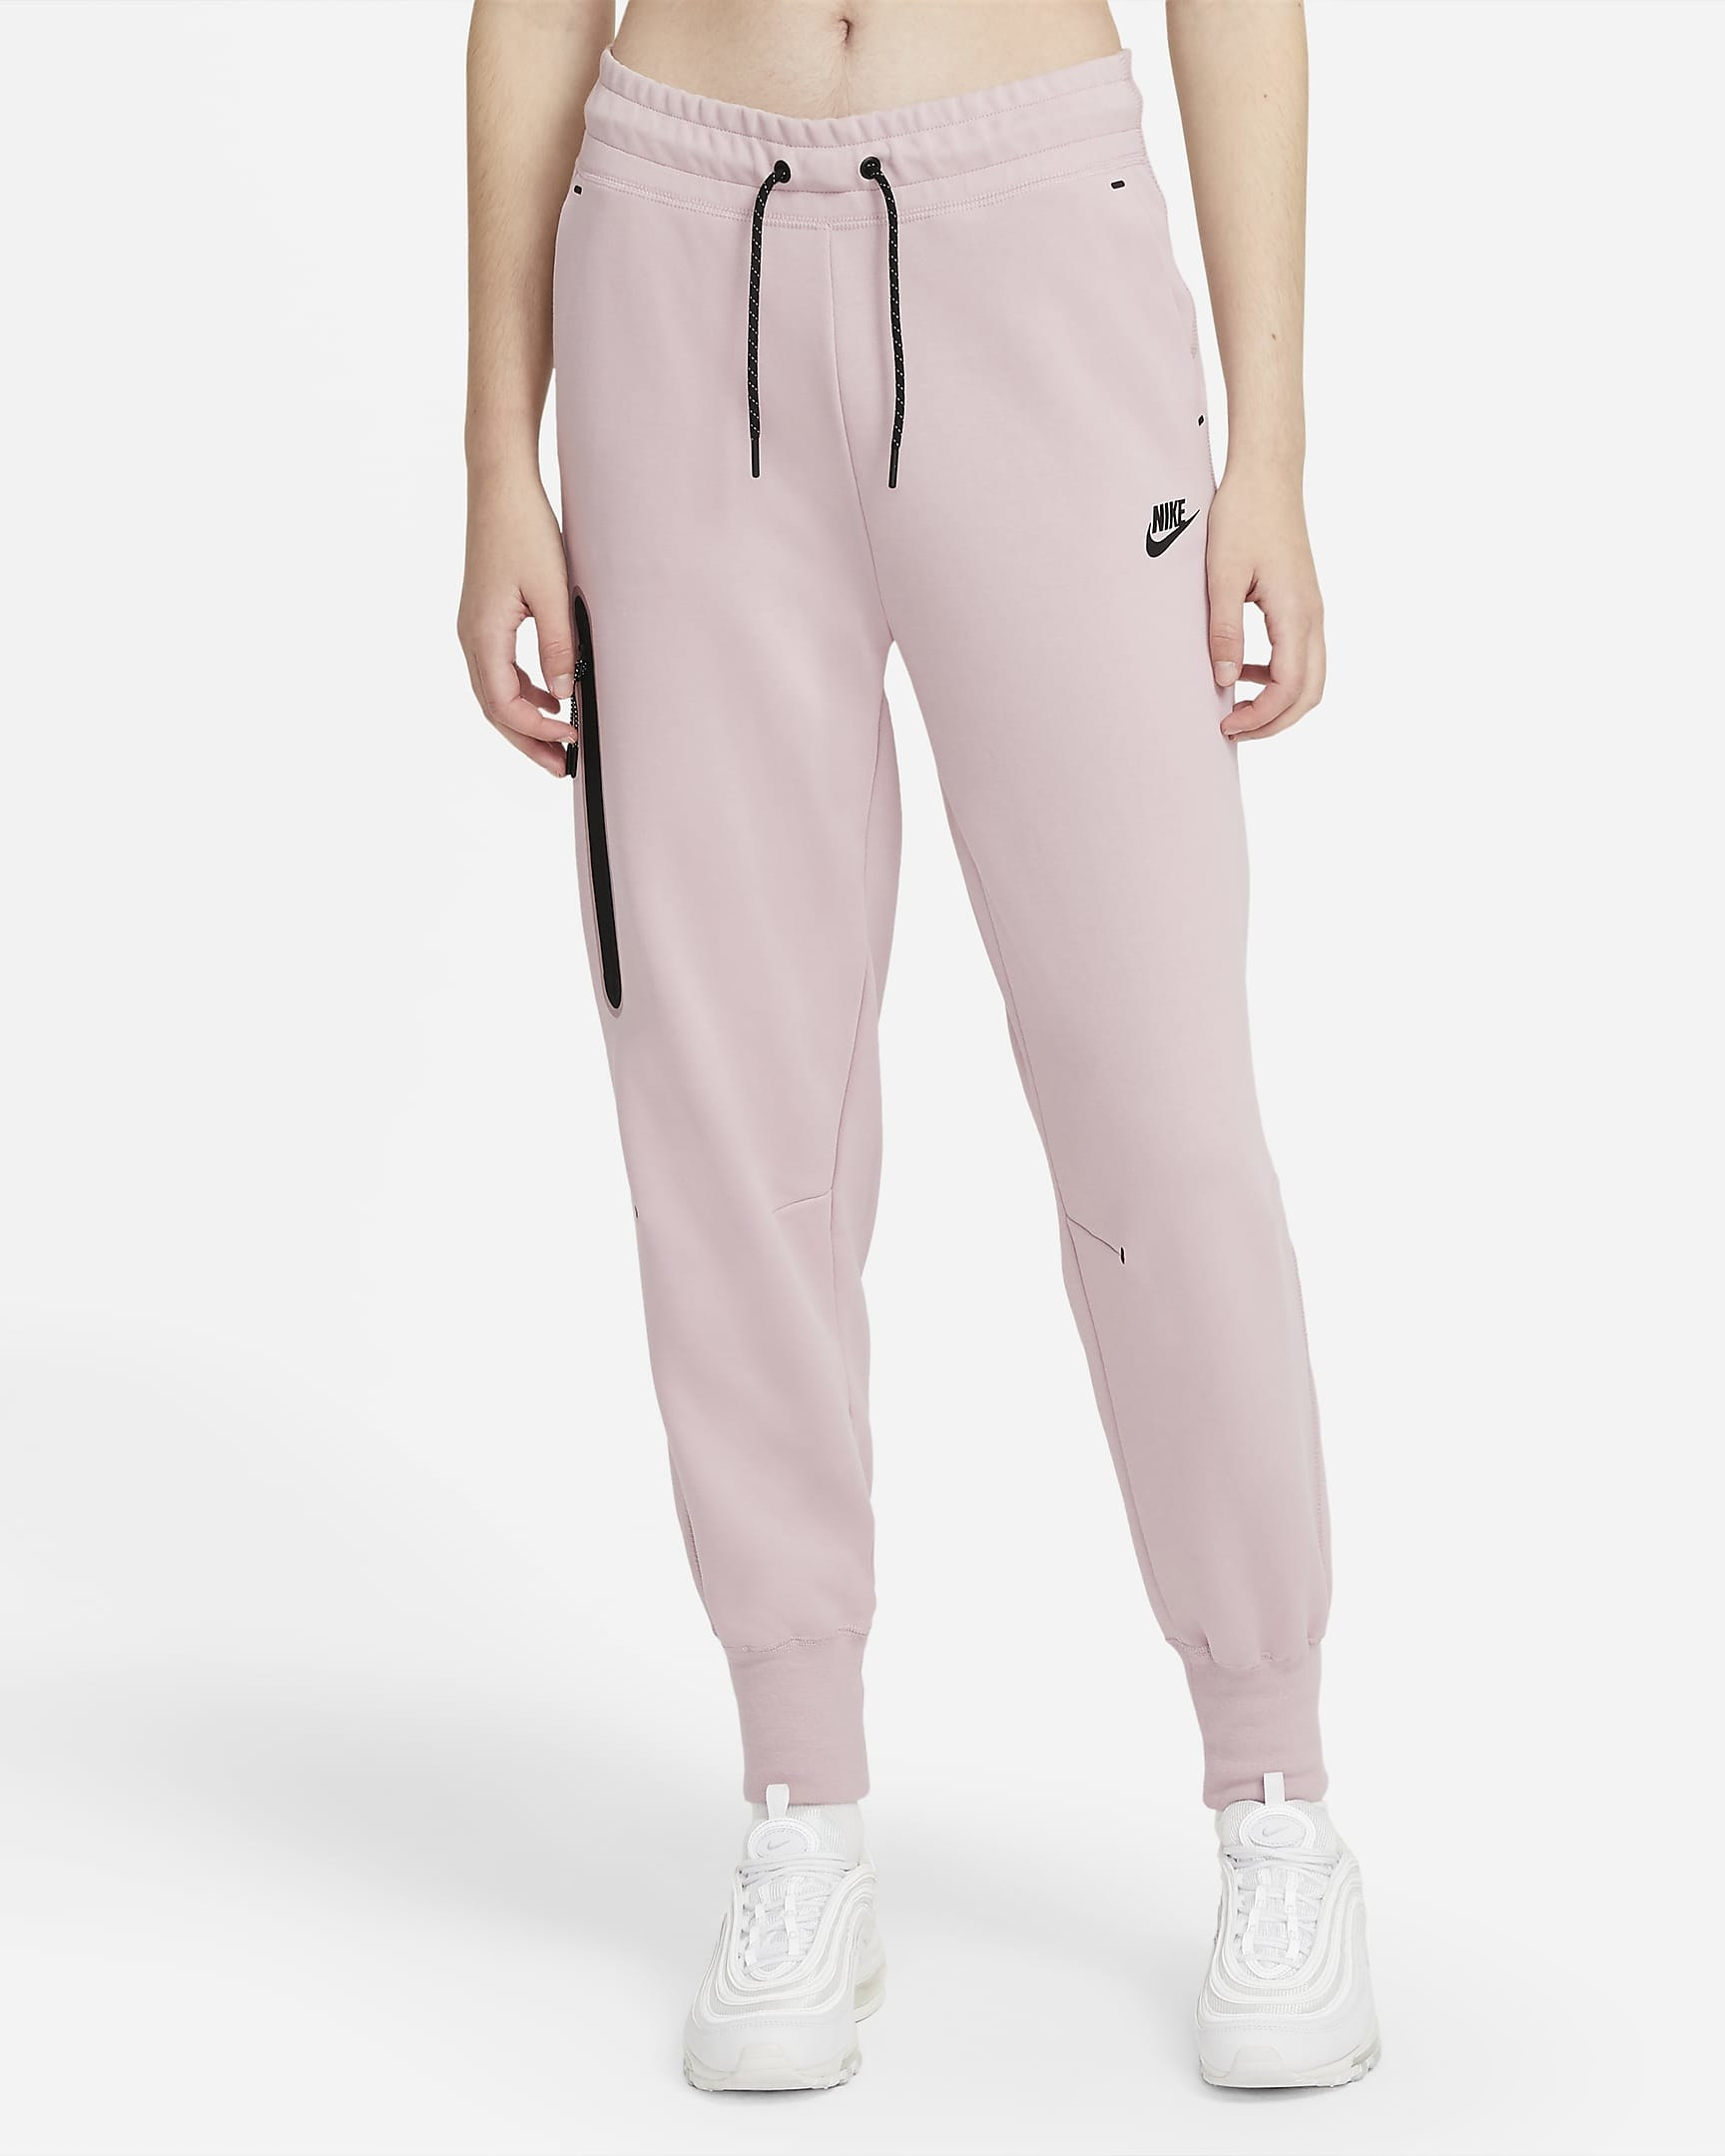 Model wearing pink fleece joggers with white sneakers